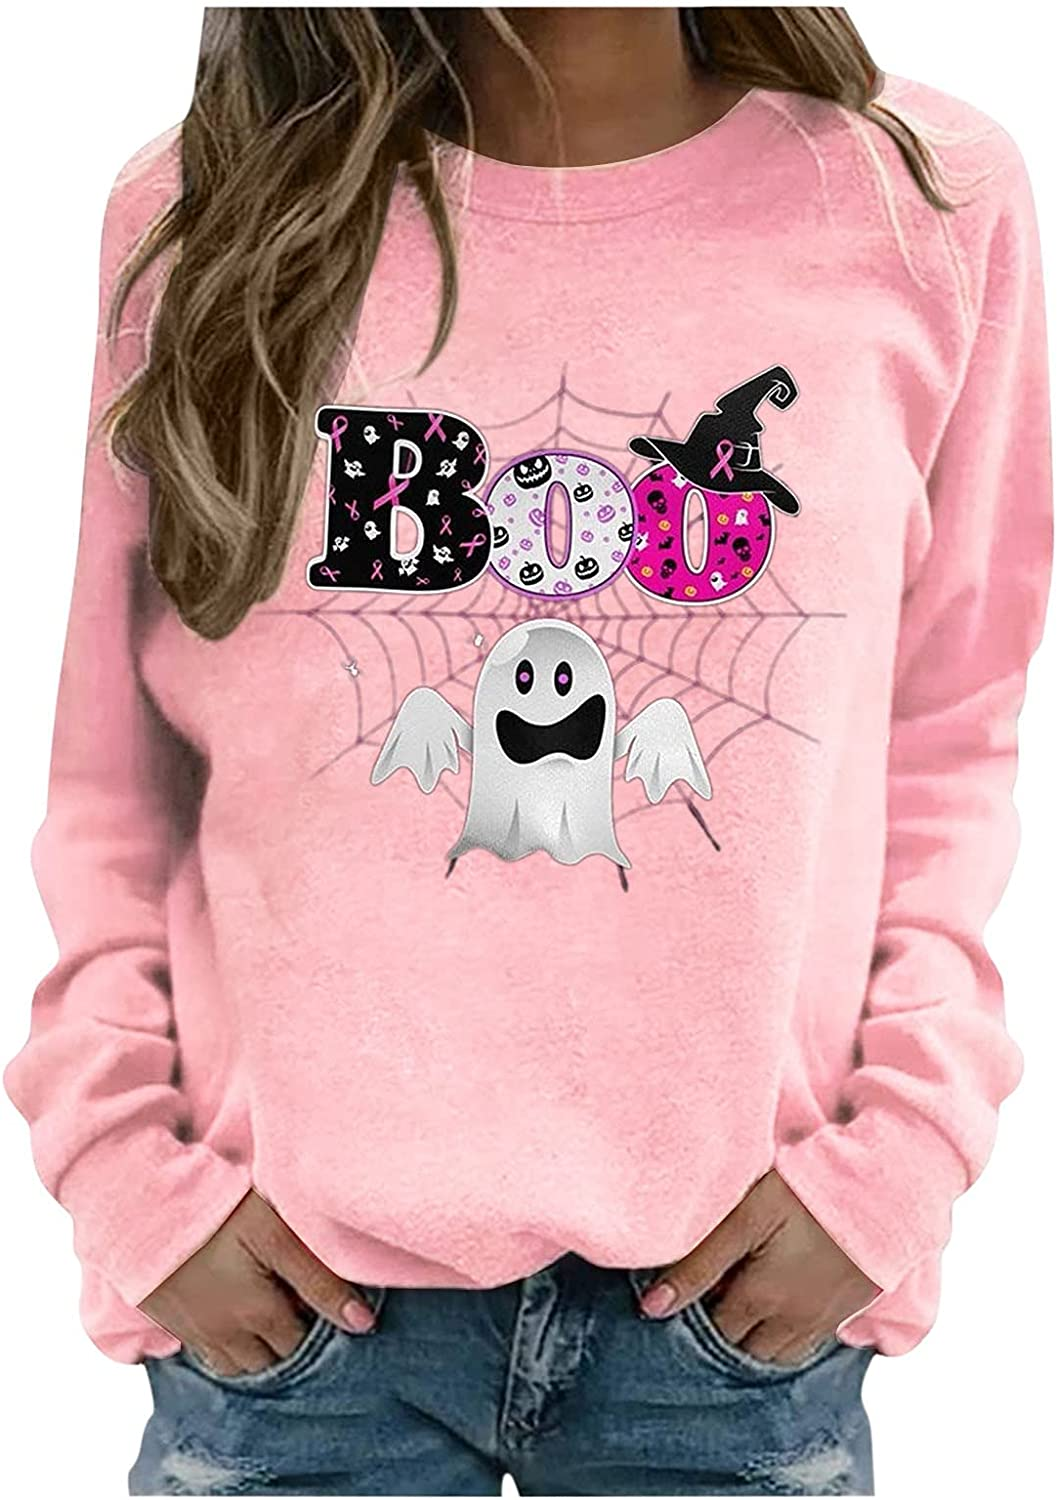 Sweatshirts For Women Breast Cancer store Print Crew Neck Month Blouse Max 83% OFF